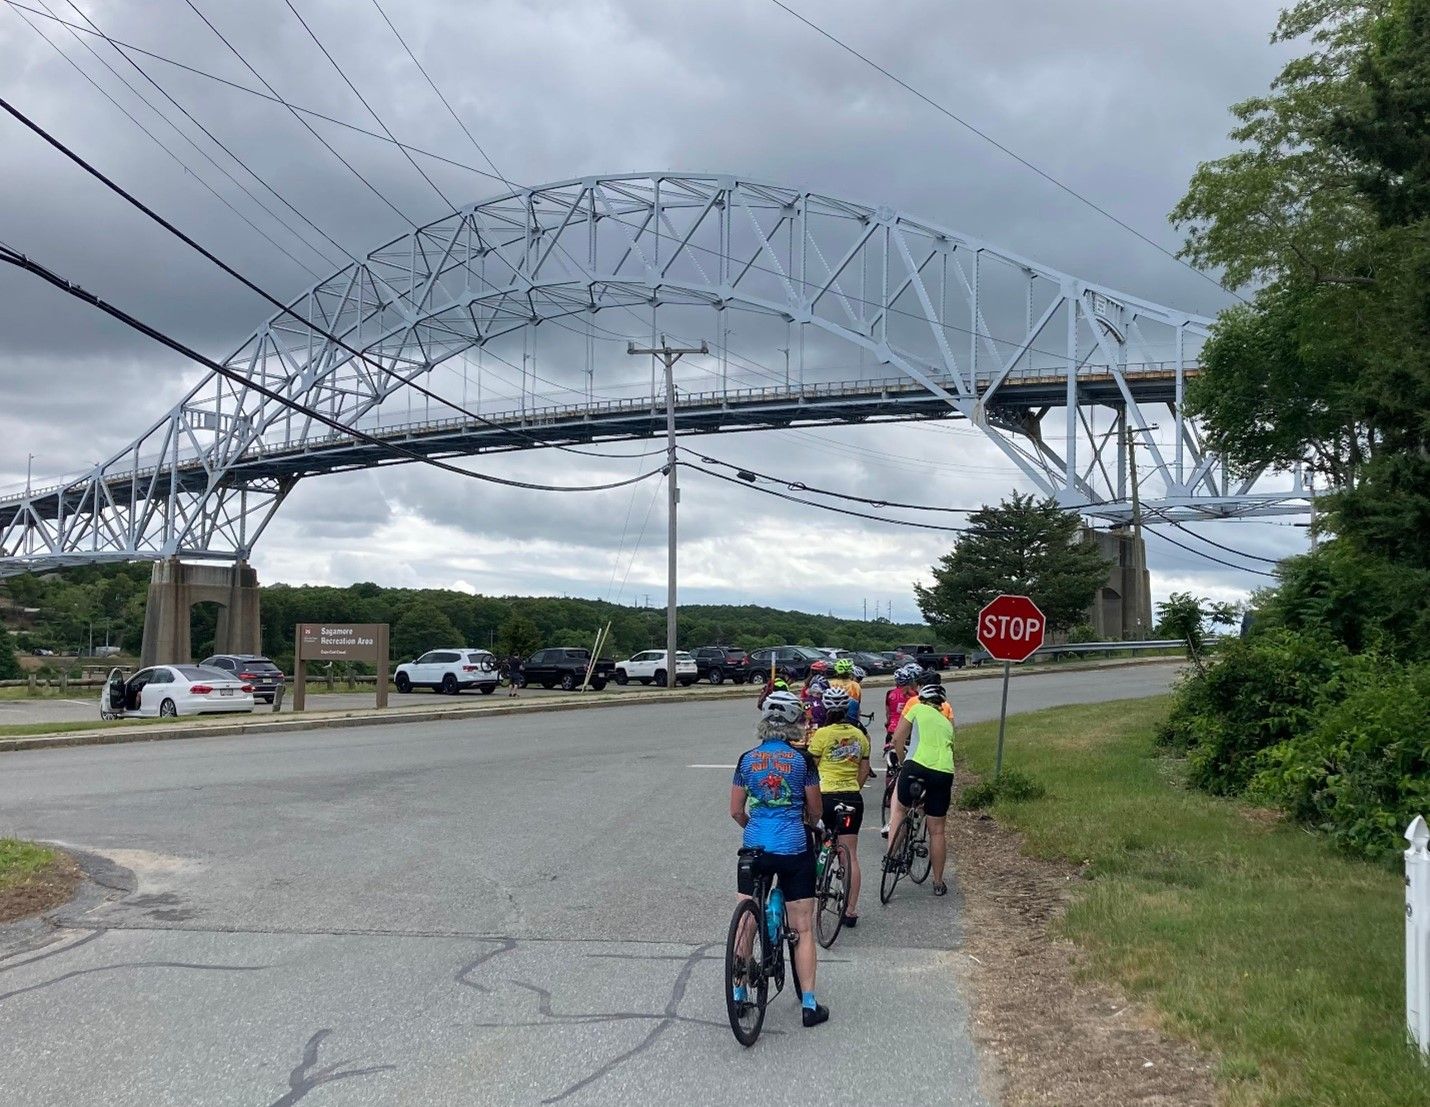 Riders approach the Sagamore Bridge, which they walk across with their bikes to enter Cape Cod.